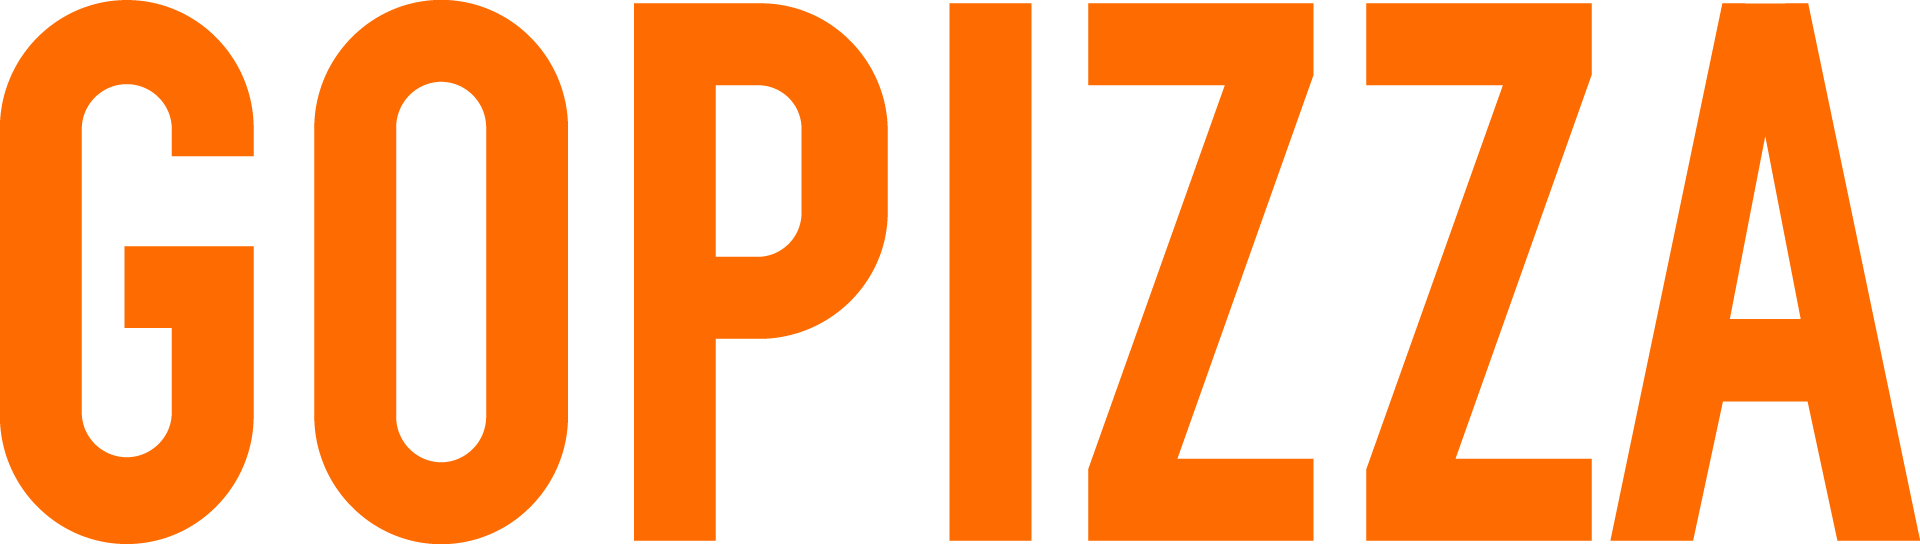 cropped-gopizza_logo_orange_1920px.png